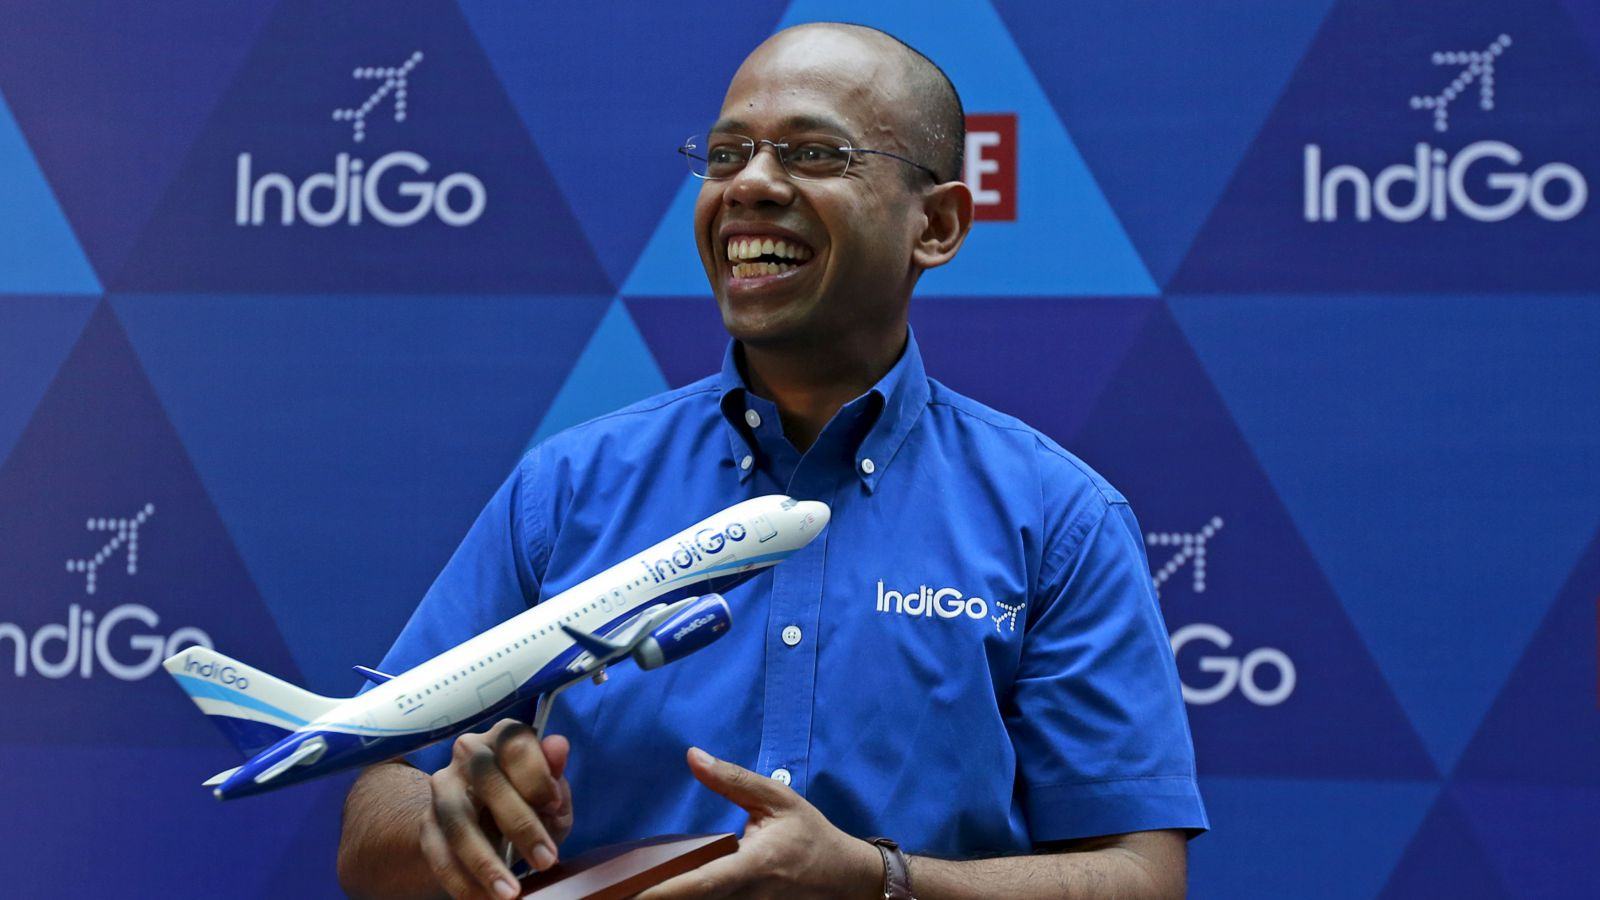 President of InterGlobe Aviation Limited Aditya Ghosh holds a memento during the company's listing ceremony at the National Stock Exchange (NSE) in Mumbai, India, November 10, 2015. The owner of IndiGo, India's biggest airline by market share, surged as much as 17.6 percent in its market debut on Tuesday despite a premium valuation, as investors bet on future profits in one of the world's fastest growing aviation markets.